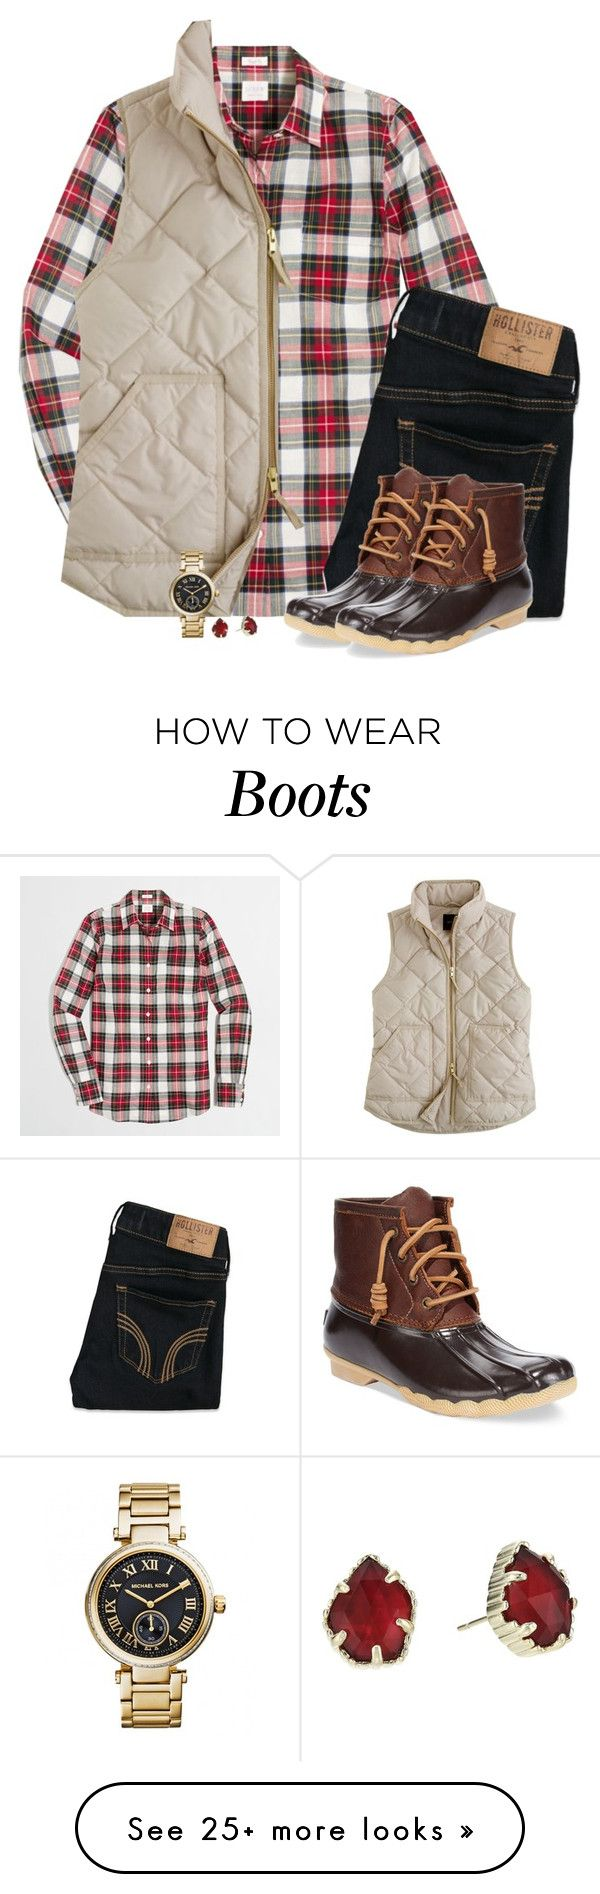 """J.Crew holiday plaid with vest & duck boots"" by steffiestaffie on Polyvore featuring J.Crew, Hollister Co., Sperry, Kendra Scott and Michael Kors"